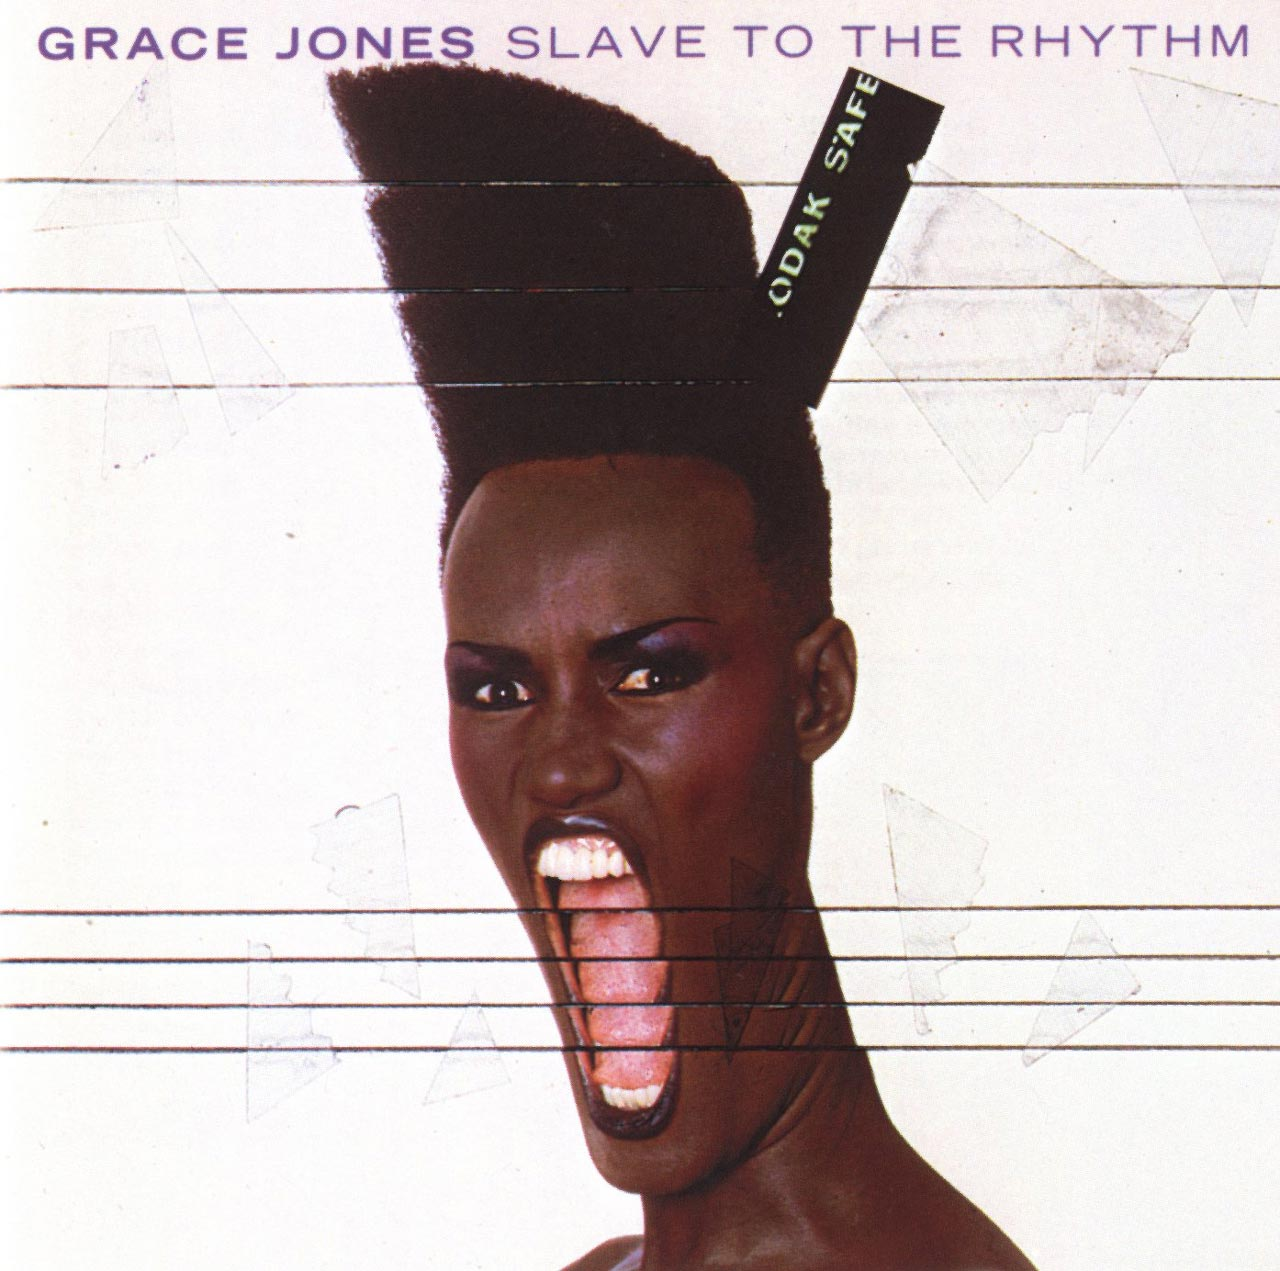 The graphic art of Greg Porto - Grace Jones - Slave To The Rhythm